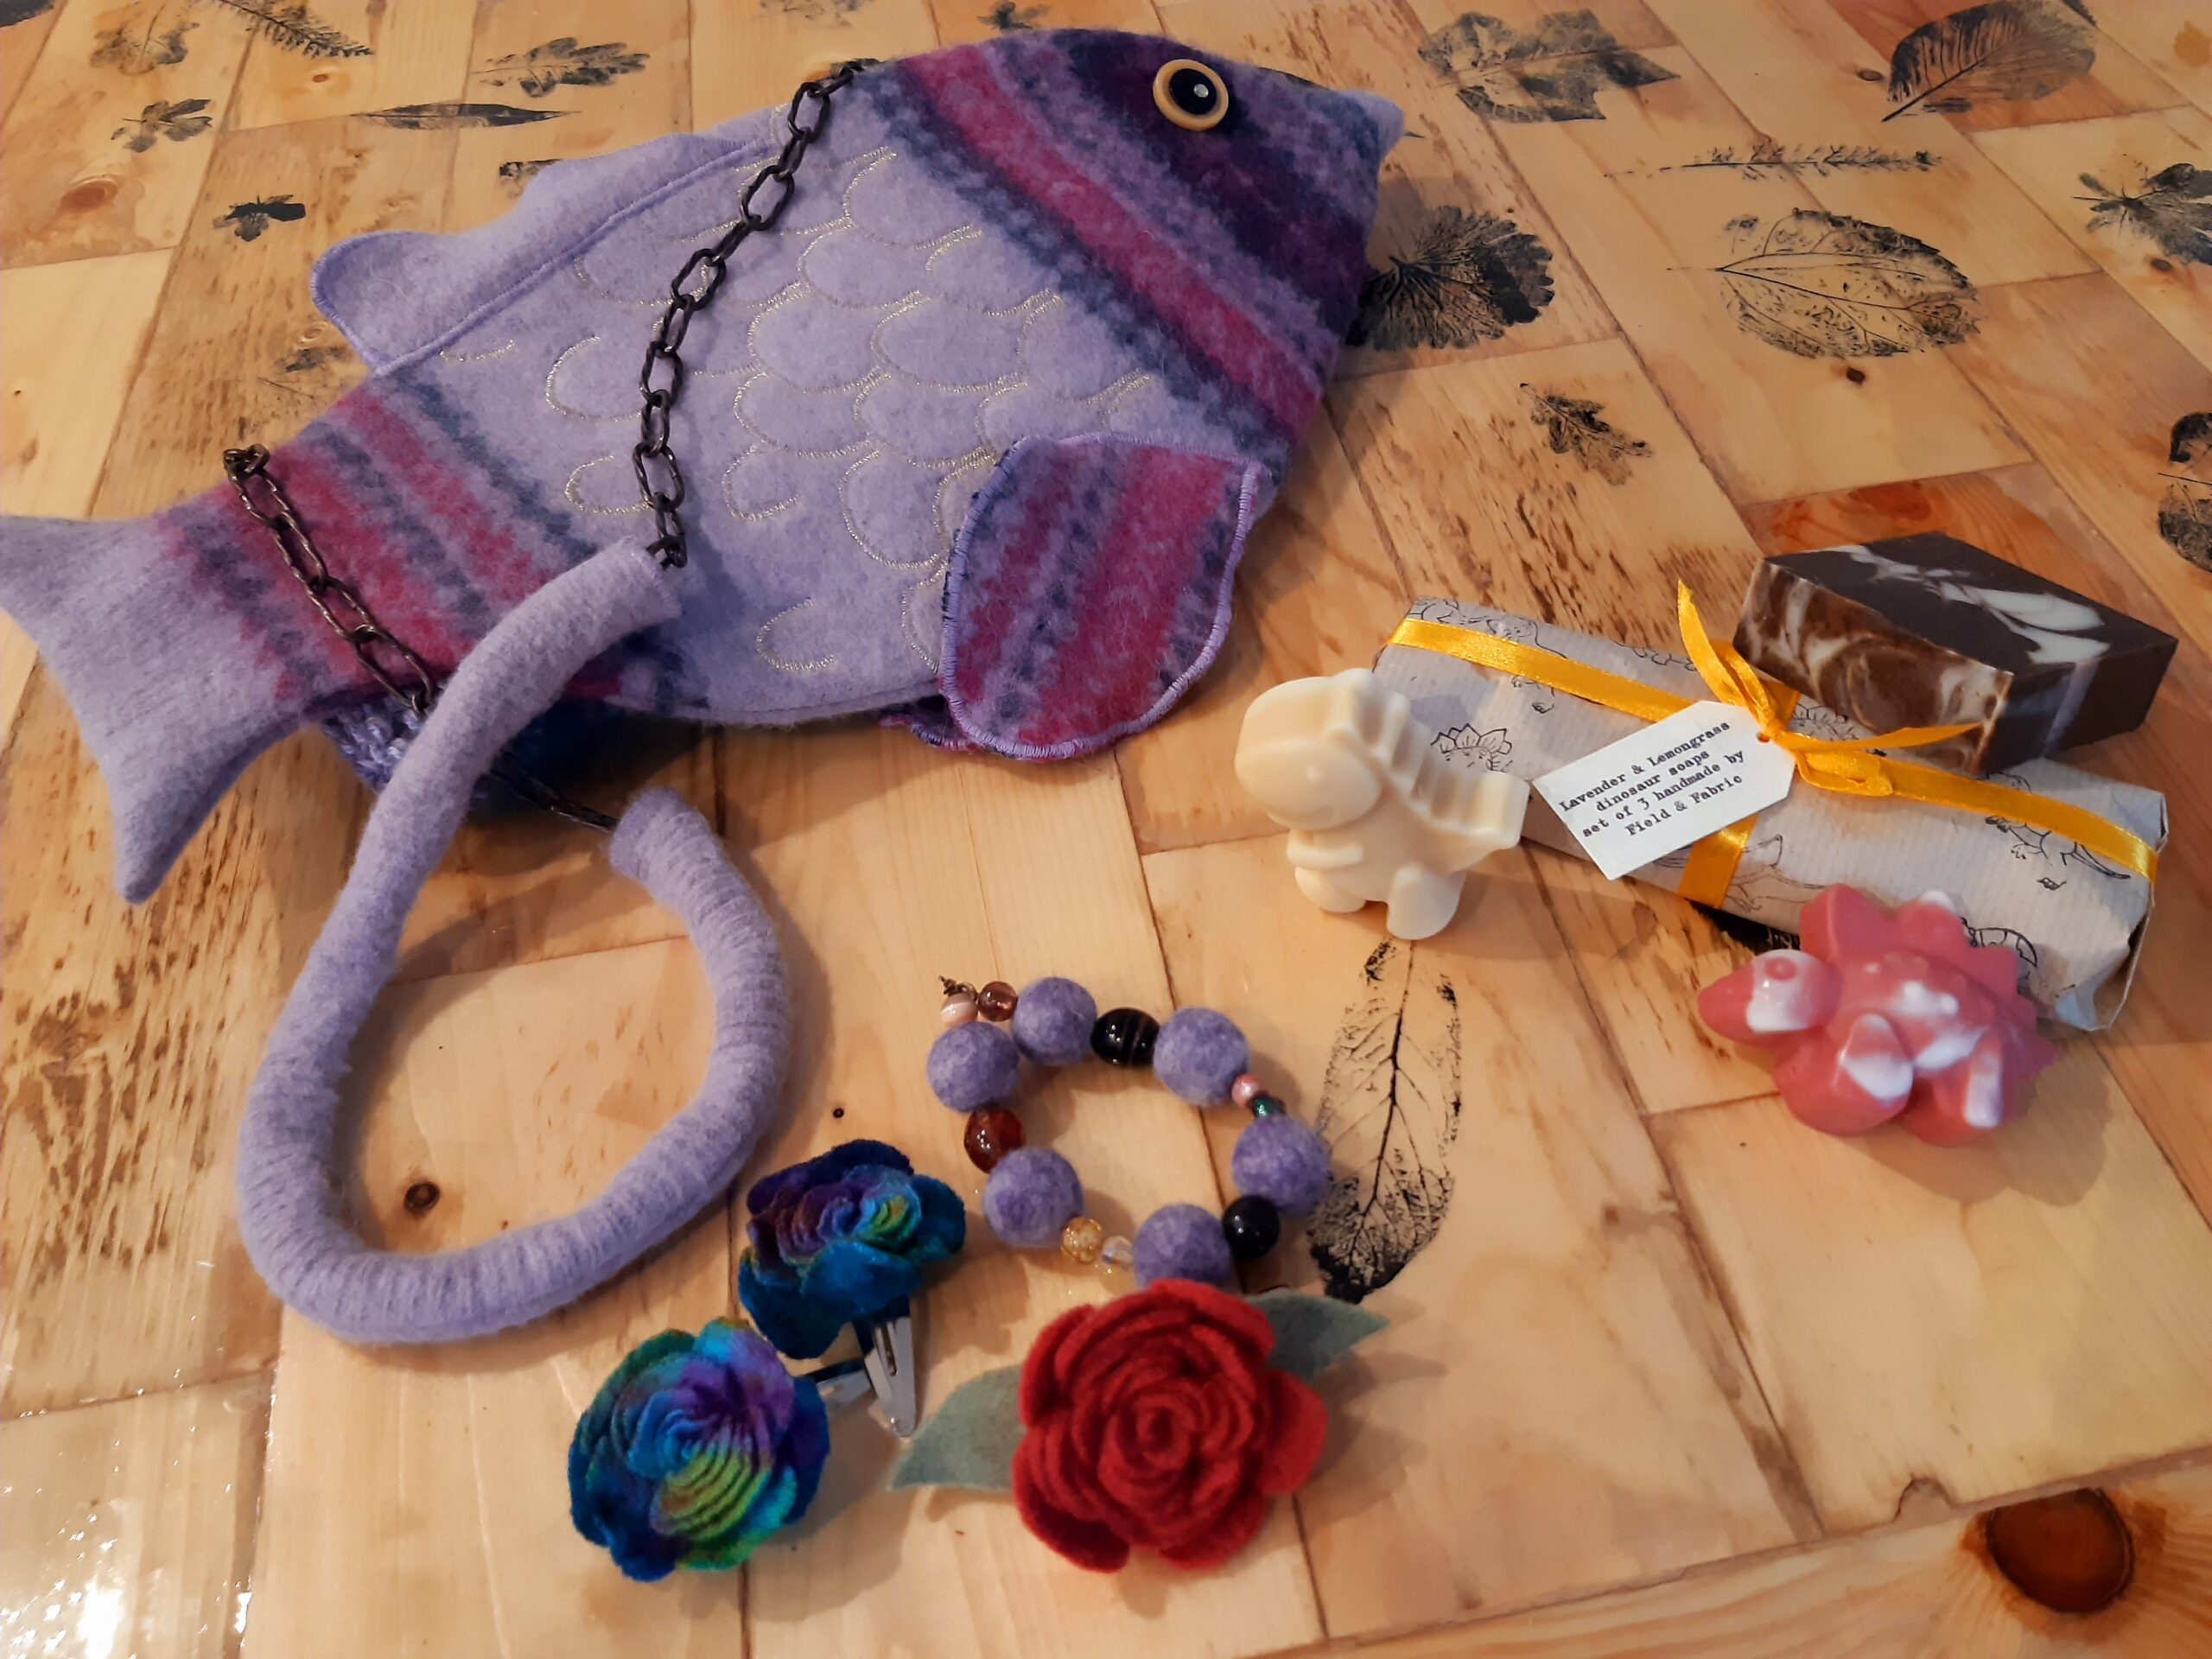 Fish-shaped bag, handmade soaps, and hair accessories from Field and Fabric